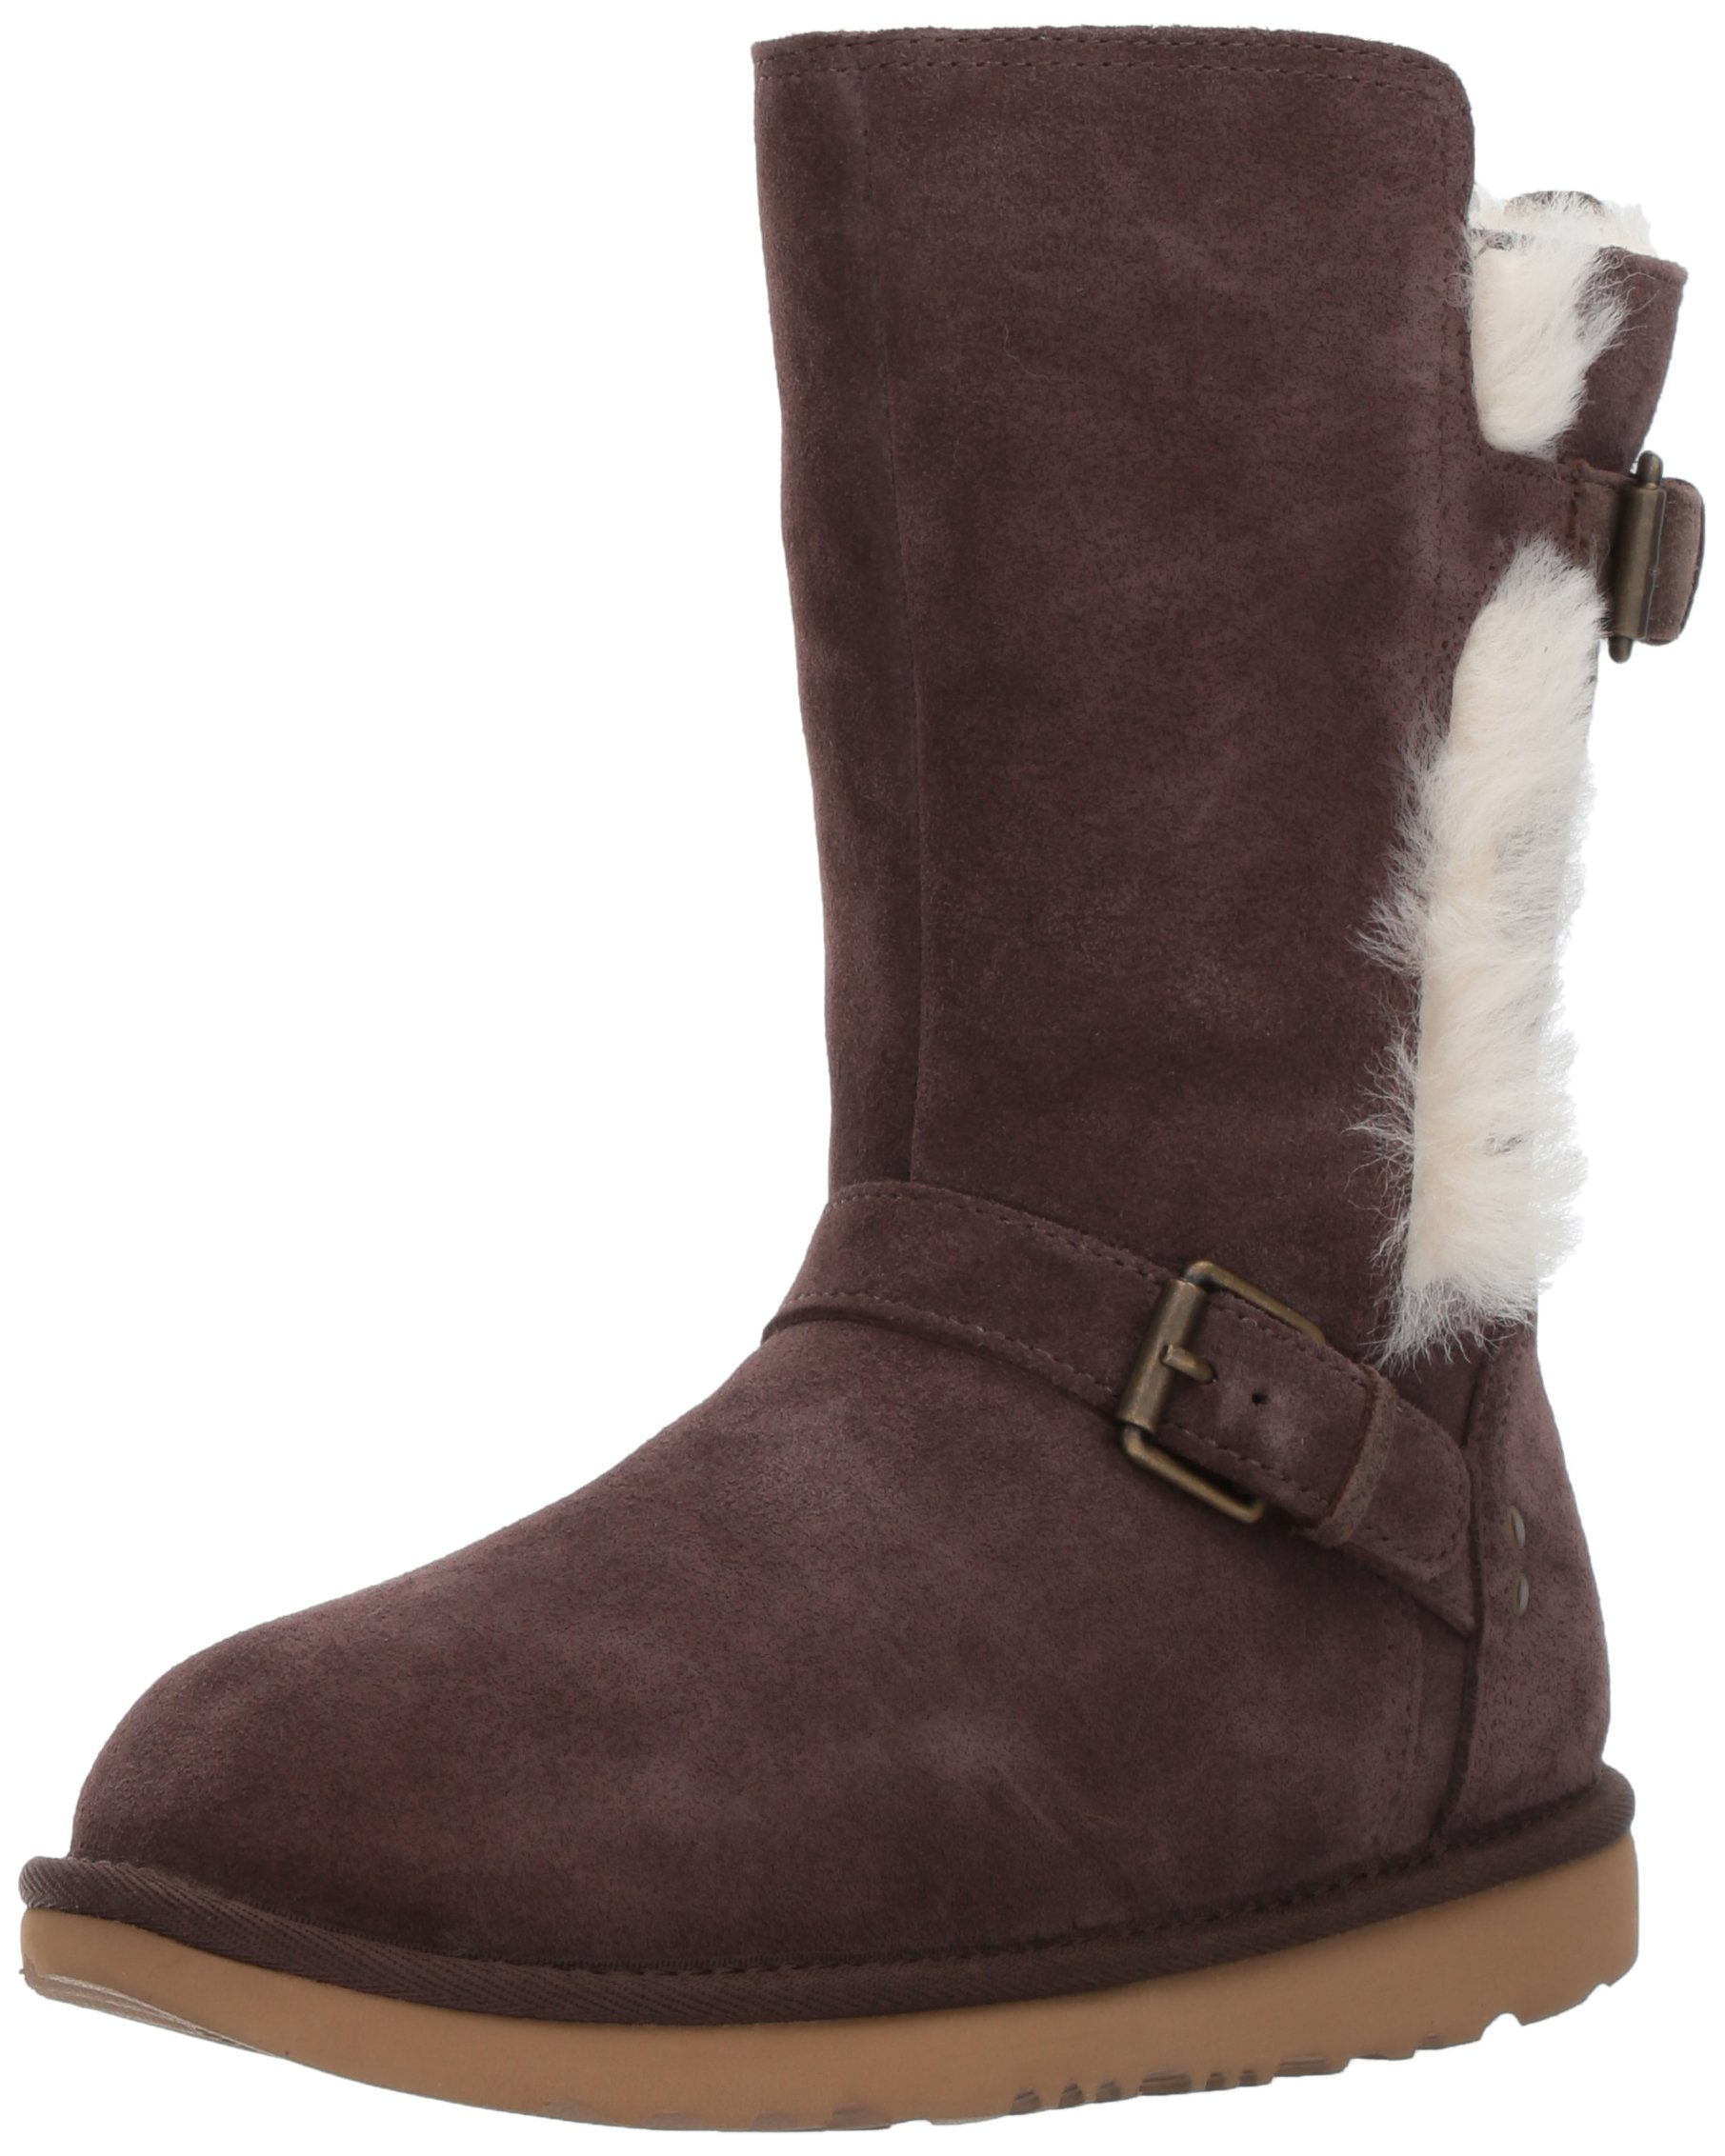 UGG Girls K Magda Boot, Chocolate, 12 M US Little Kid